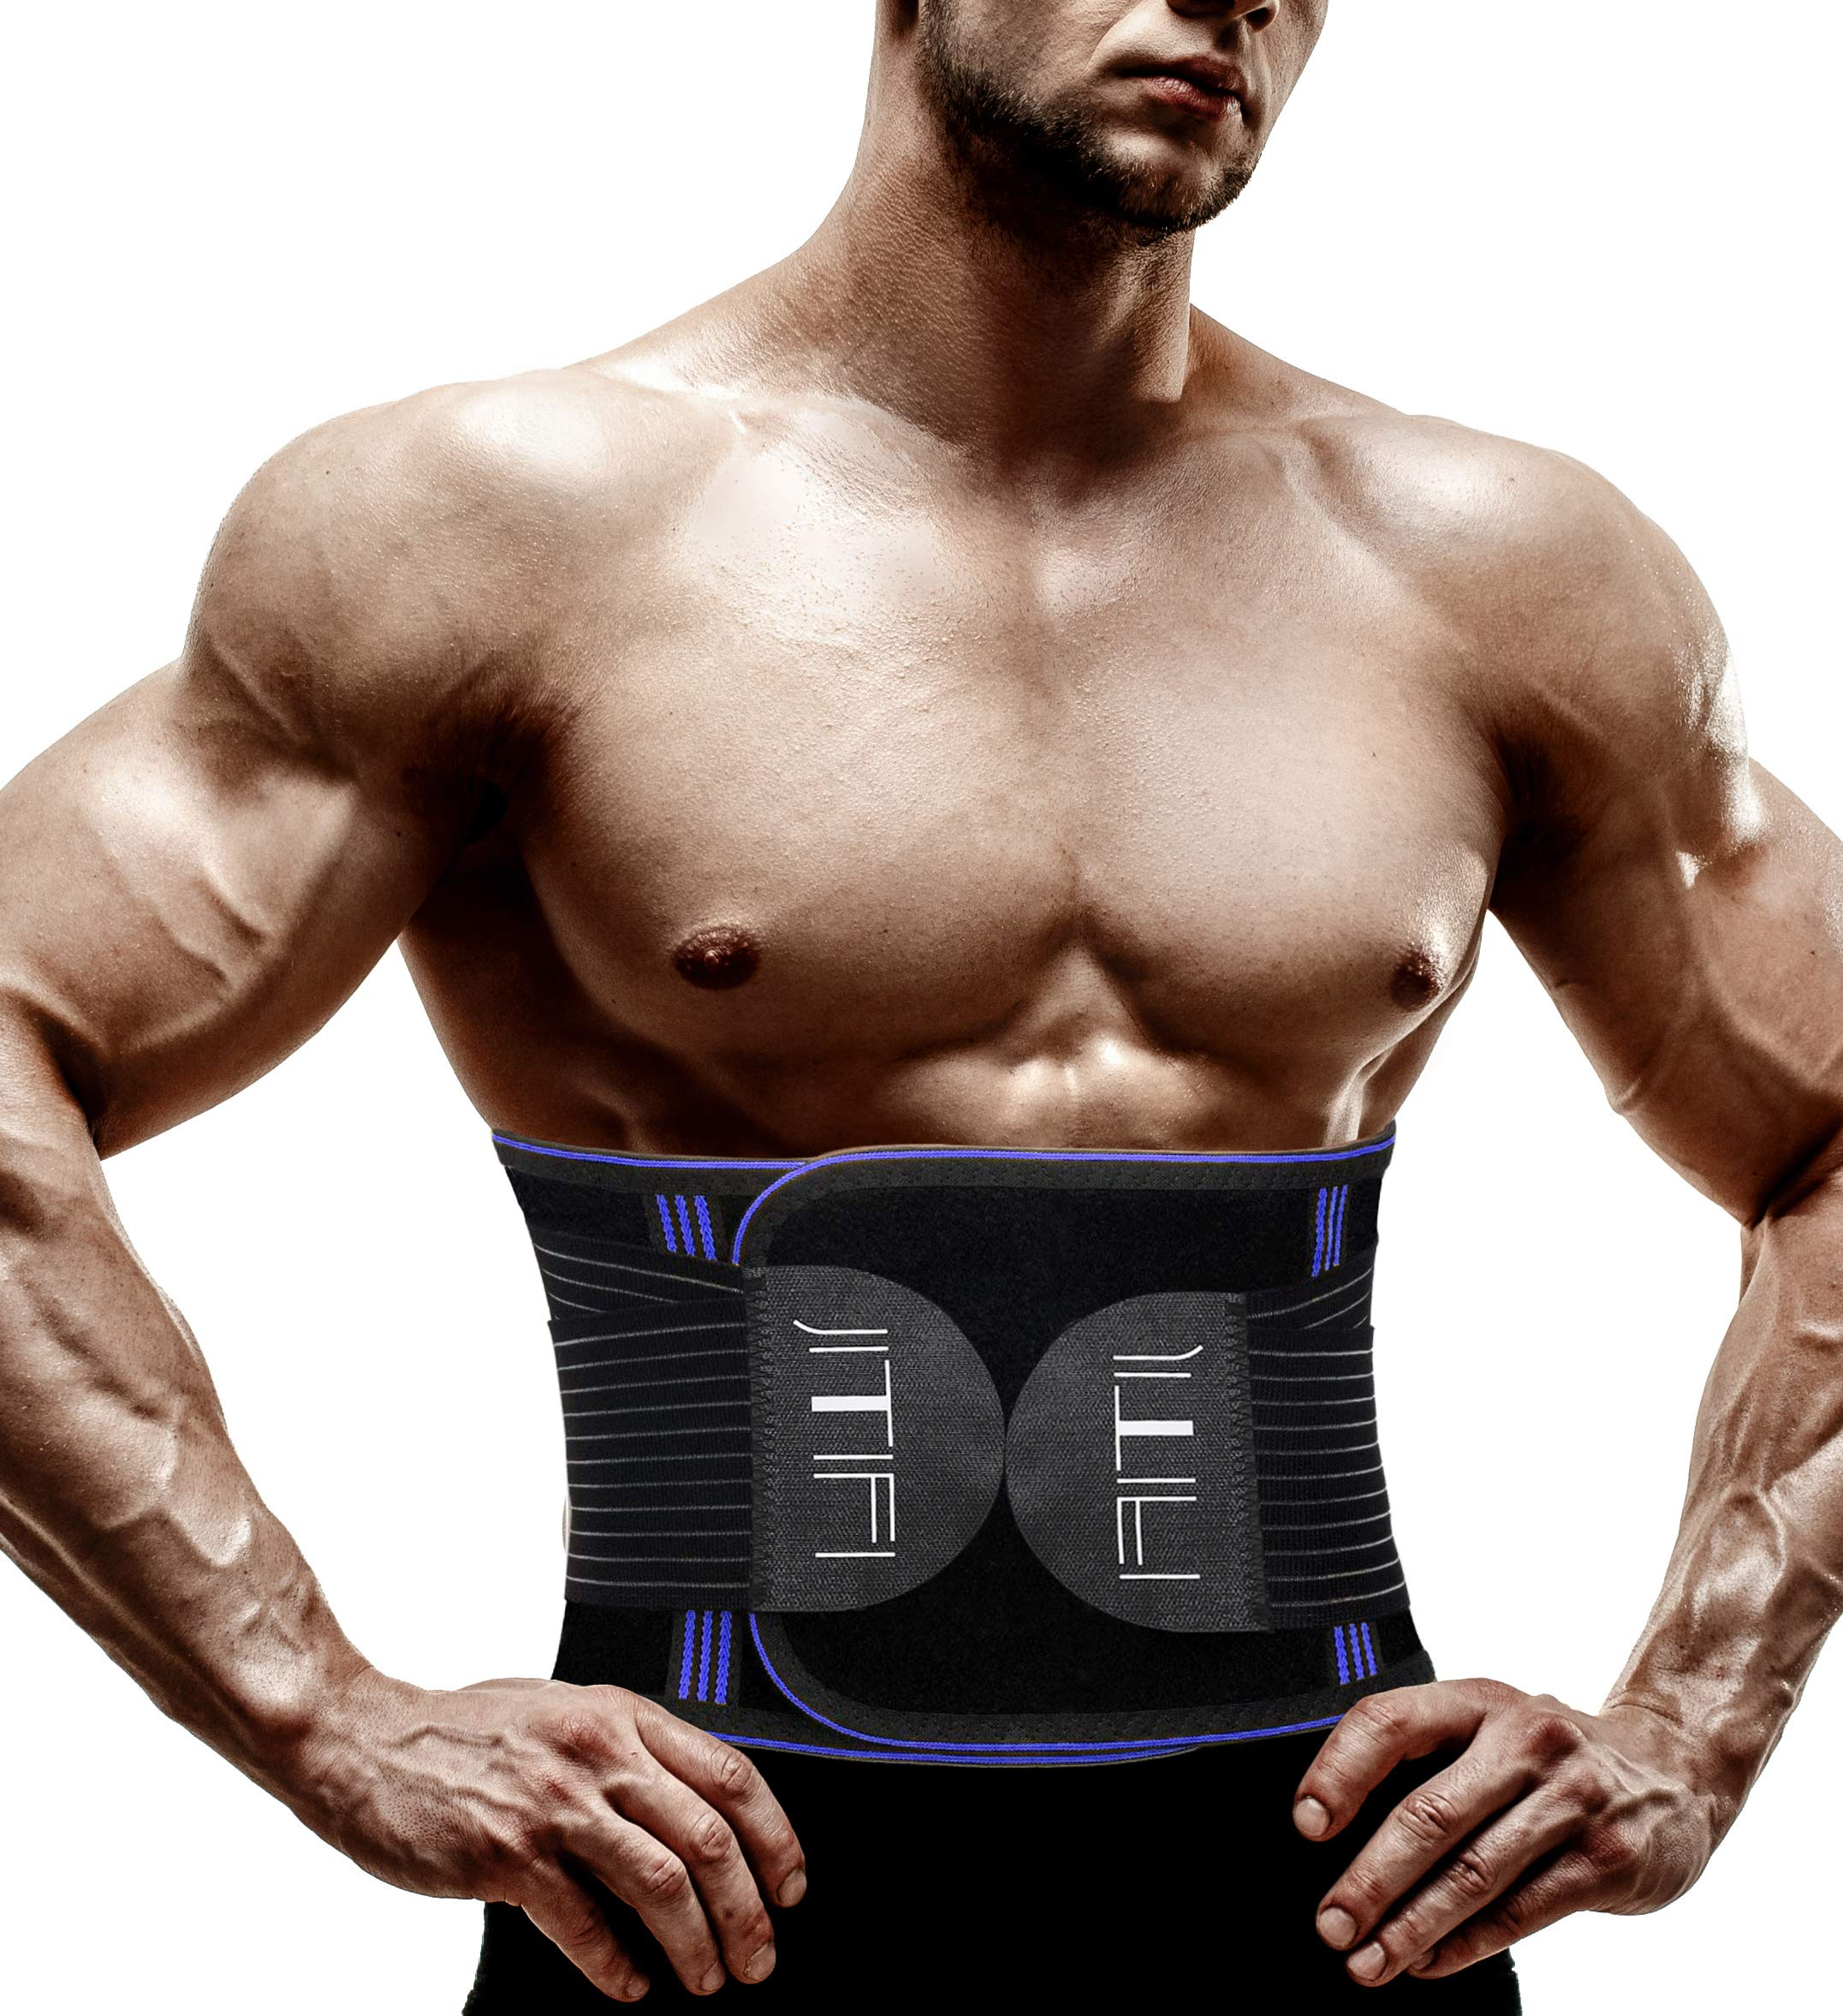 JITIFI Waist Cincher Trainer Belt Trimmer Slimmer Belt Body Shaper Compression Postpartum Recovery Band for Weight Loss Workout Fitness Back Brace Waistband